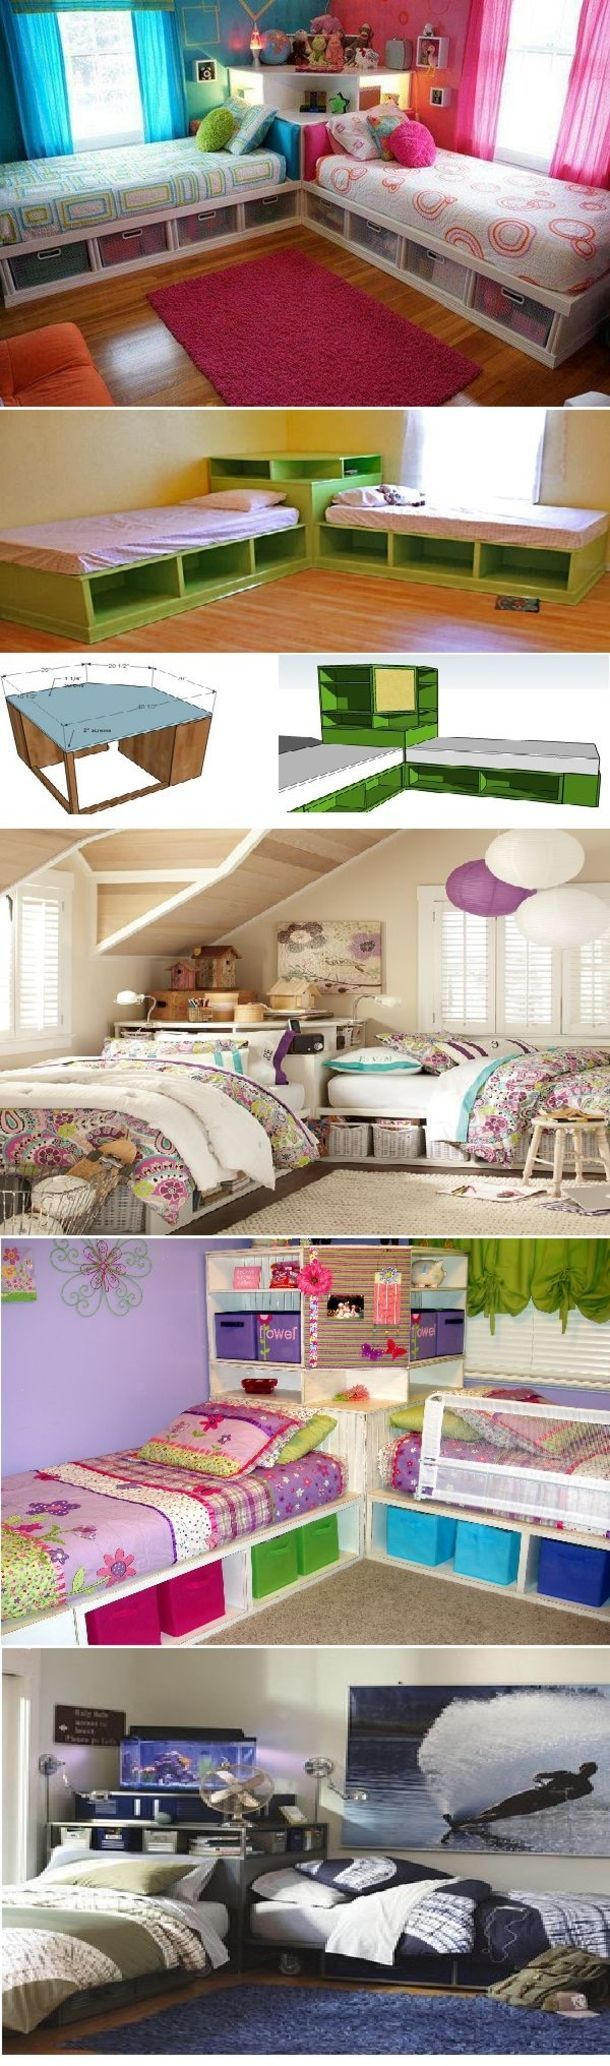 Best Kid Bedrooms Images On Pinterest Room Home And